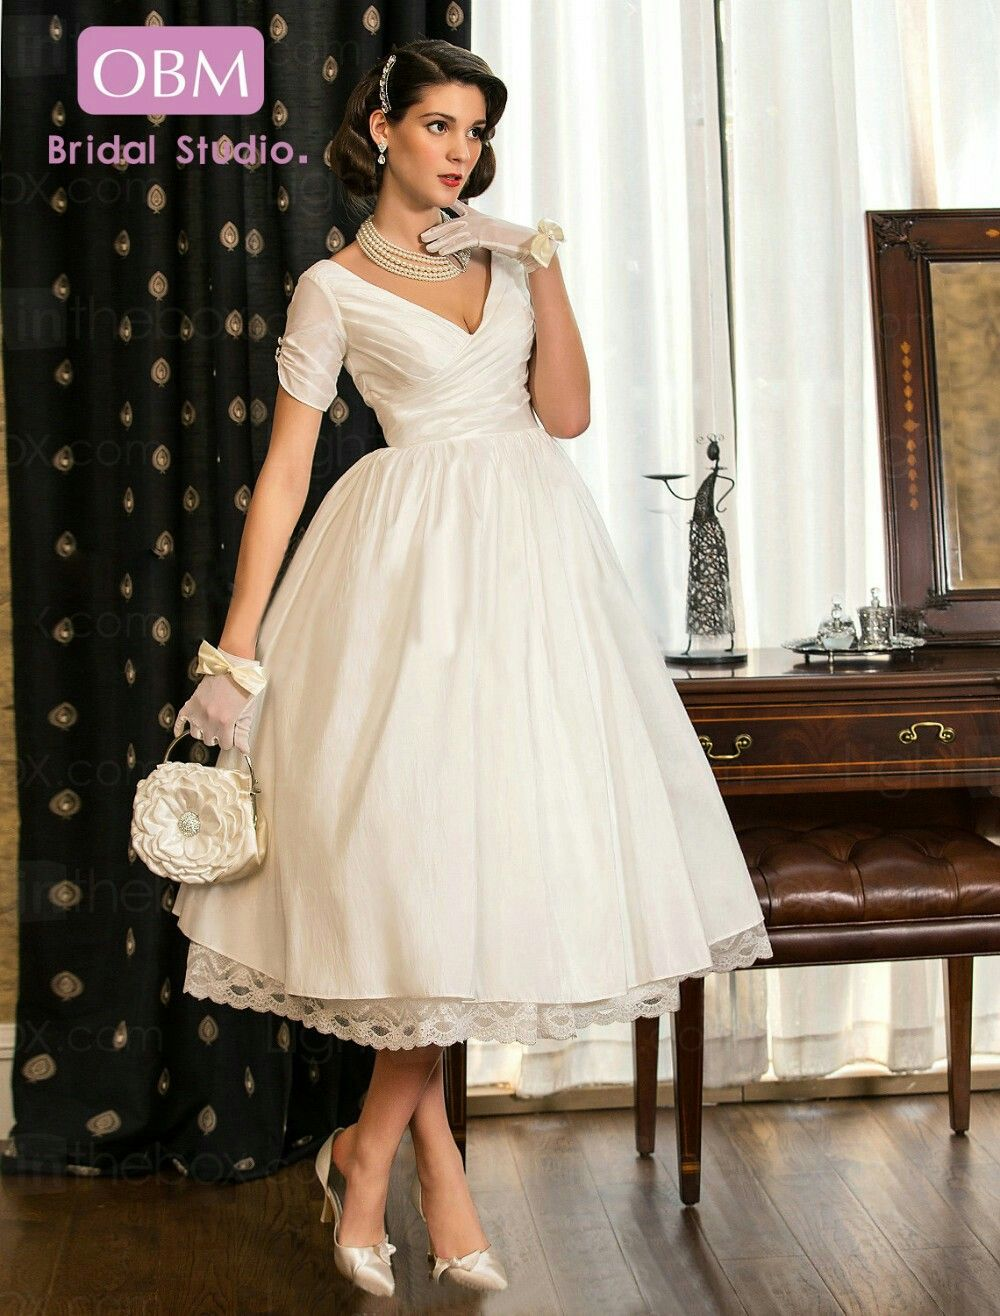 Conservative wedding dresses  Pin by Ellen Dugan on Wedding Gowns  Pinterest  Gowns and Weddings